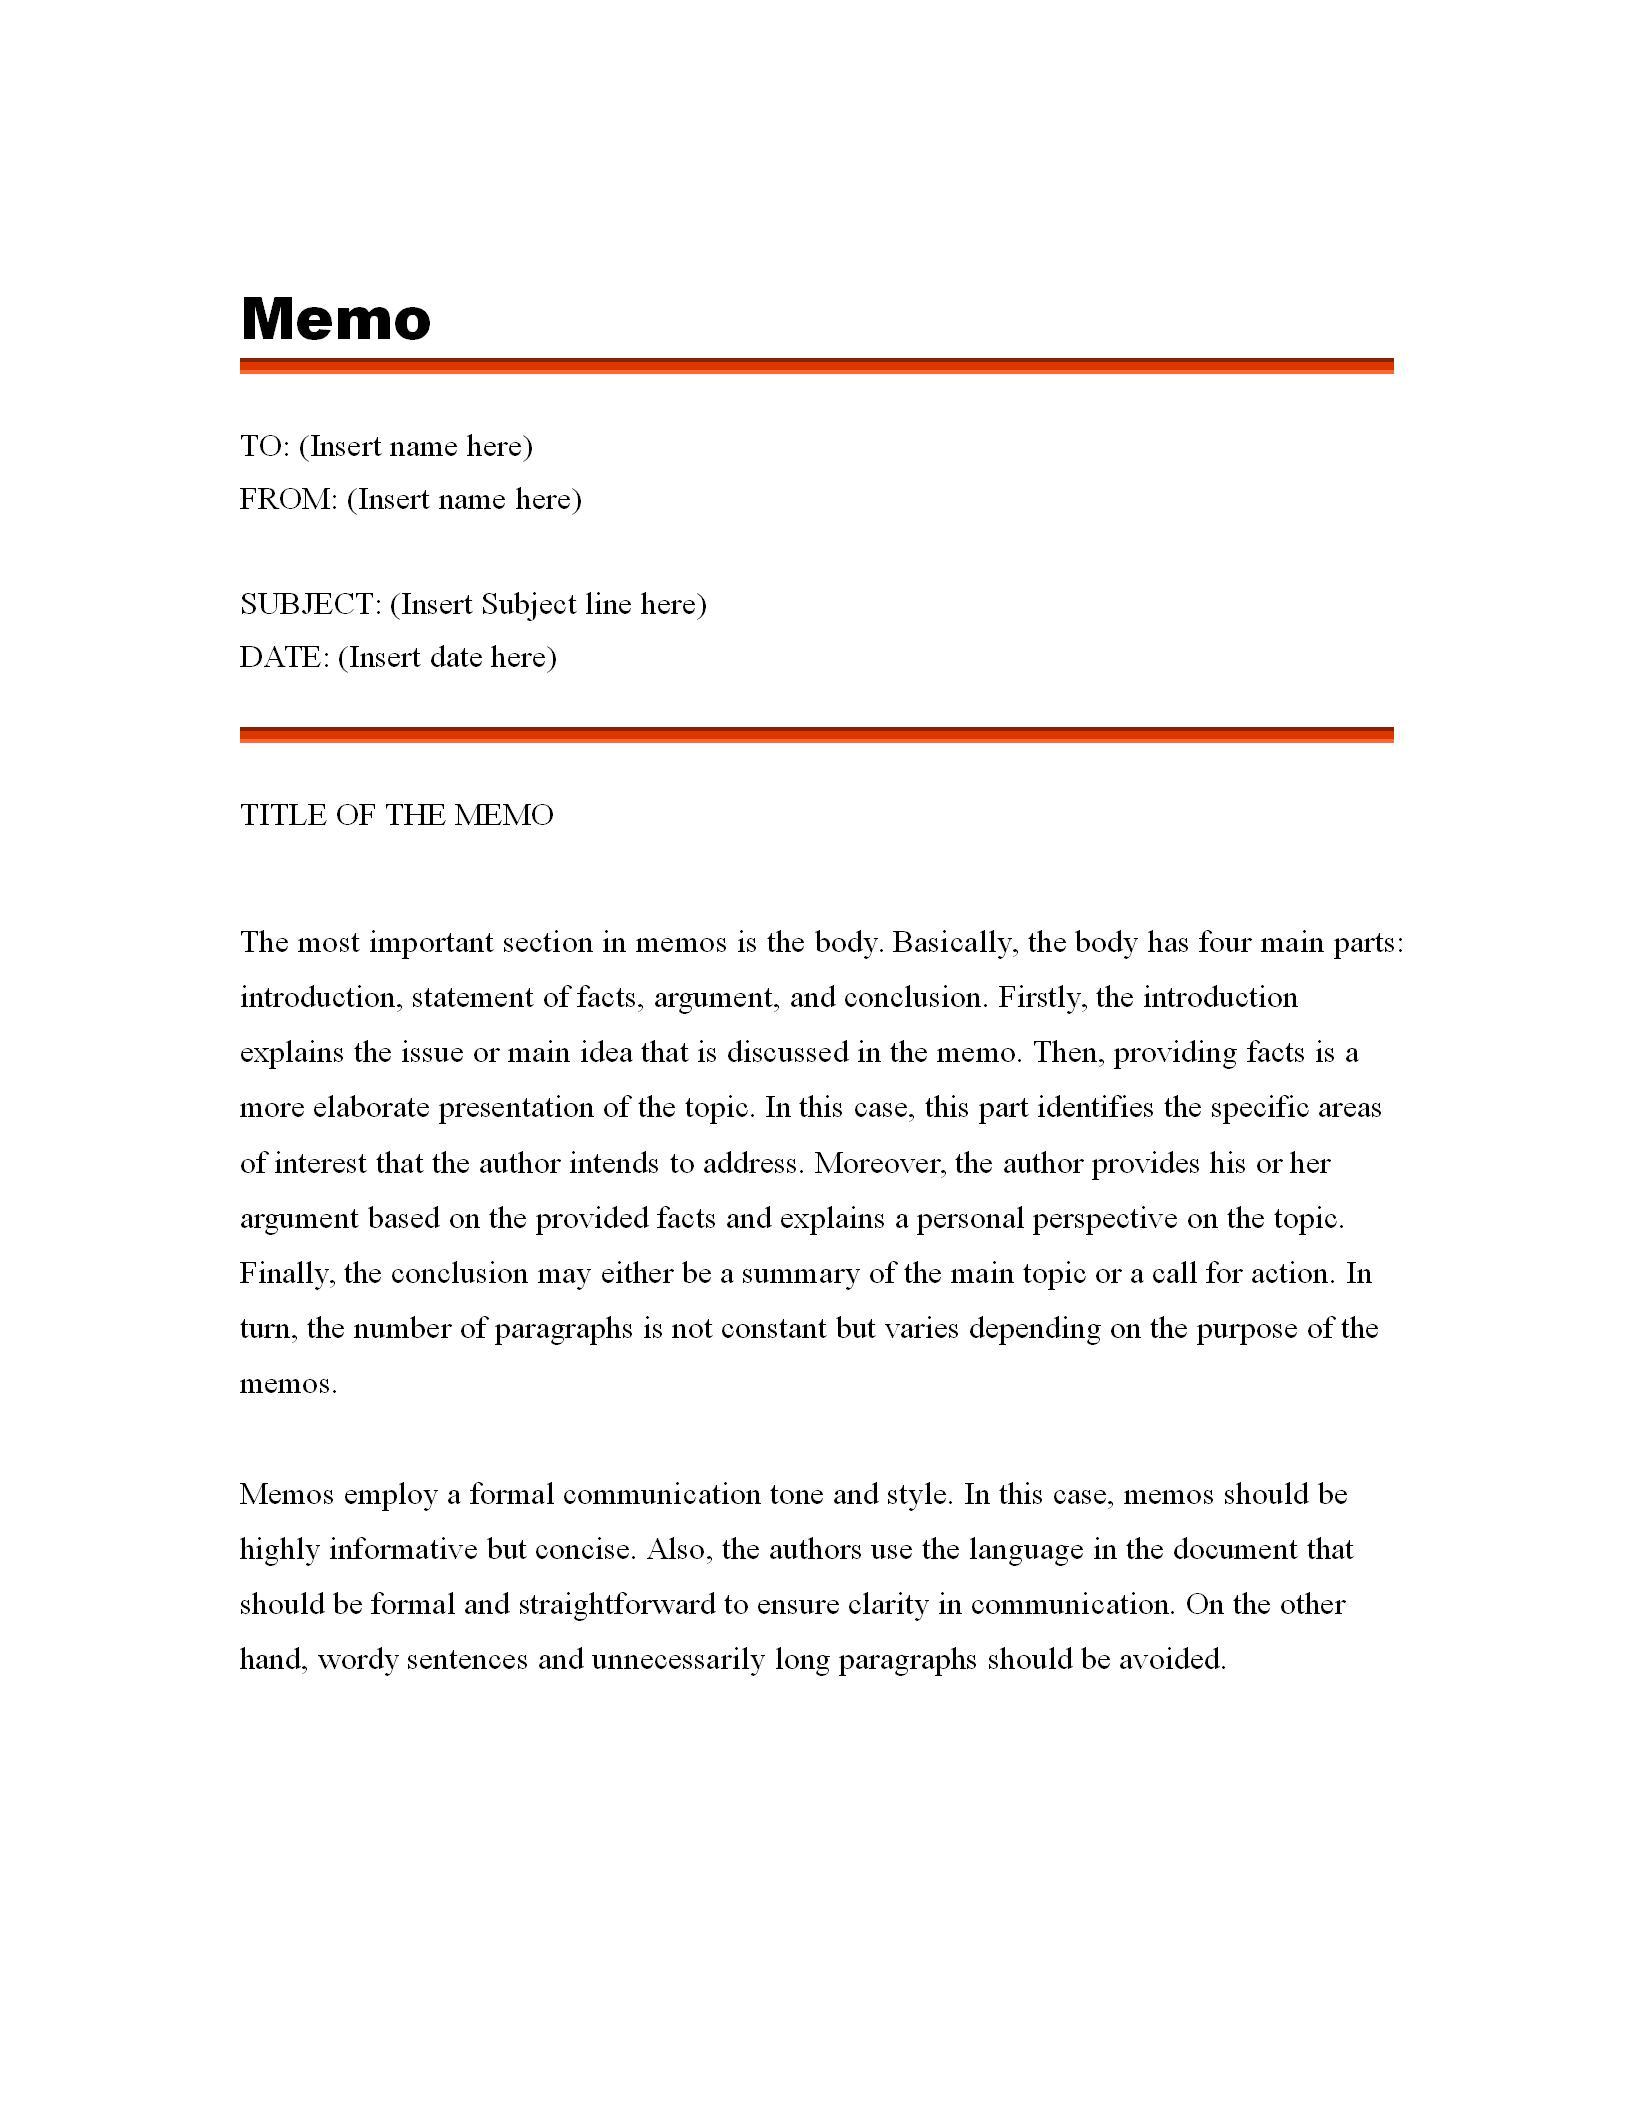 Memo Template Download from d4z1onkegyrs5.cloudfront.net